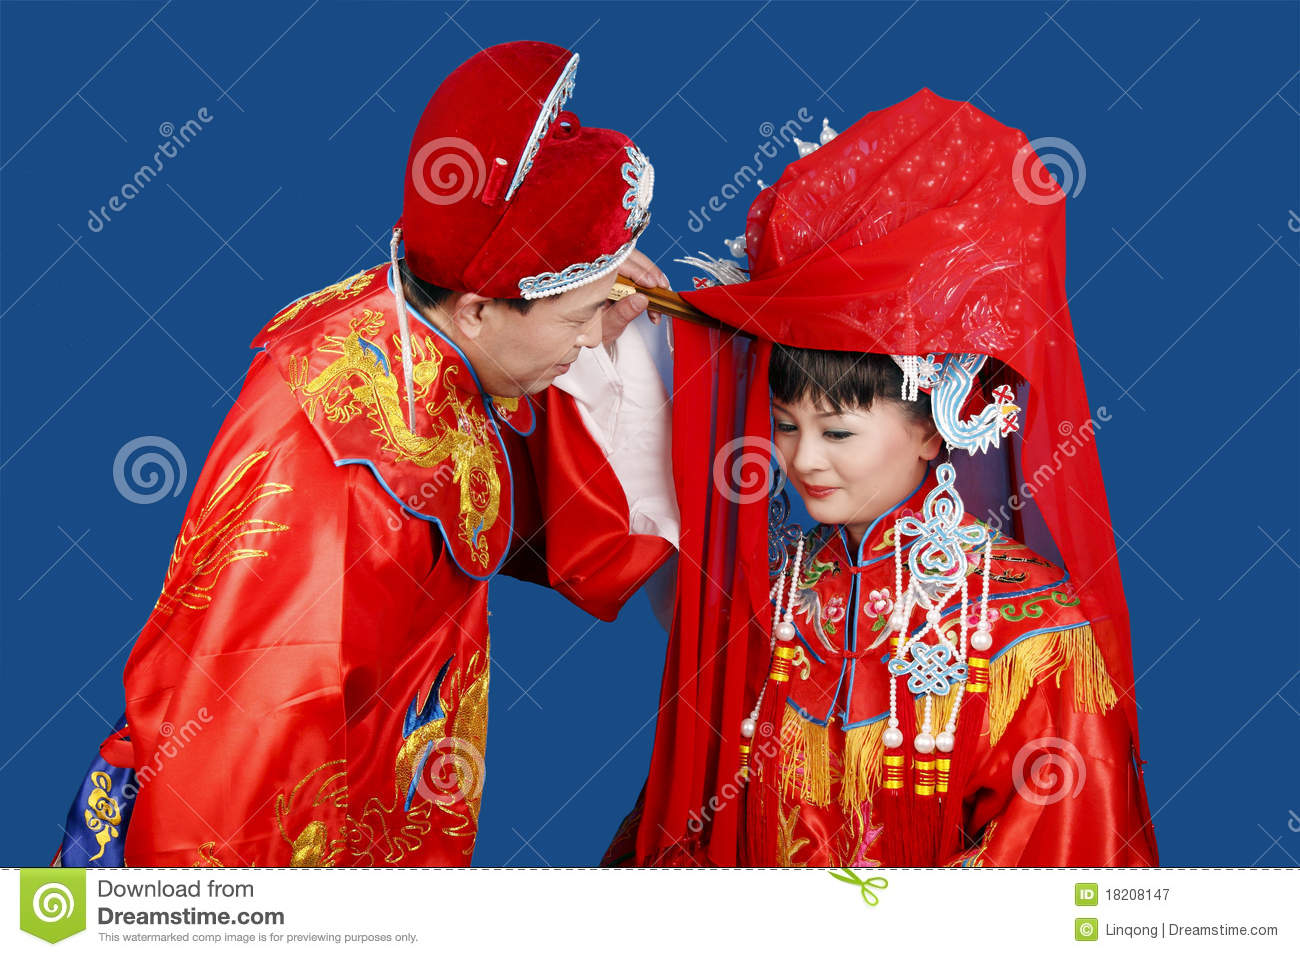 b8e78bc8a3849 Traditional Chinese Wedding Stock Image - Image of characteristic ...